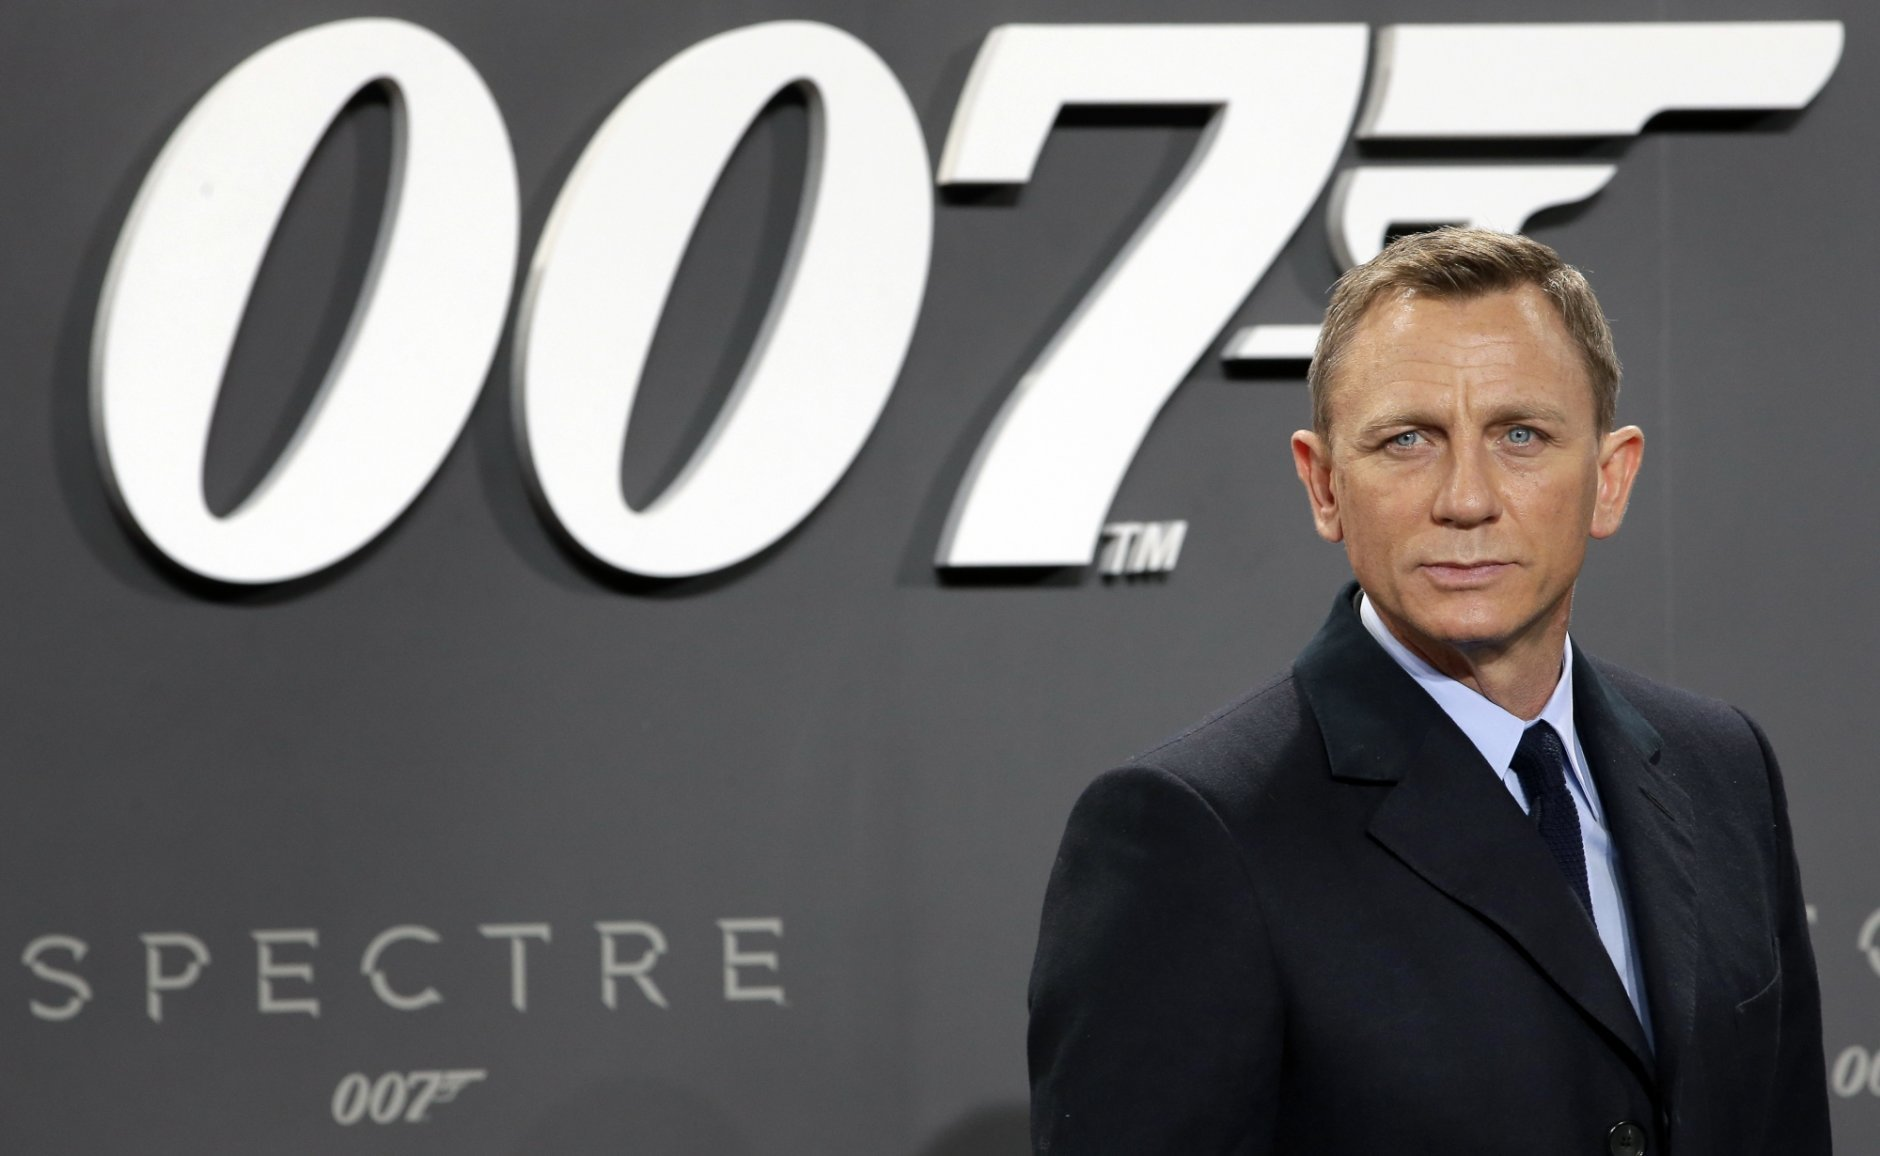 FILE - In this Oct. 28, 2015, file photo, actor Daniel Craig poses for the media as he arrives for the German premiere of the James Bond movie 'Spectre' in Berlin, Germany. Producers of the James Bond films say Cary Joji Fukunaga will direct the next instalment in the spy thriller series, replacing Danny Boyle. Michael G. Wilson, Barbara Broccoli and star Daniel Craig announced Thursday, Sept. 20, 2018 that the movie will start filming at London's Pinewood Studios on March 4, and will be released on Feb. 14, 2020.(AP Photo/Michael Sohn, File)